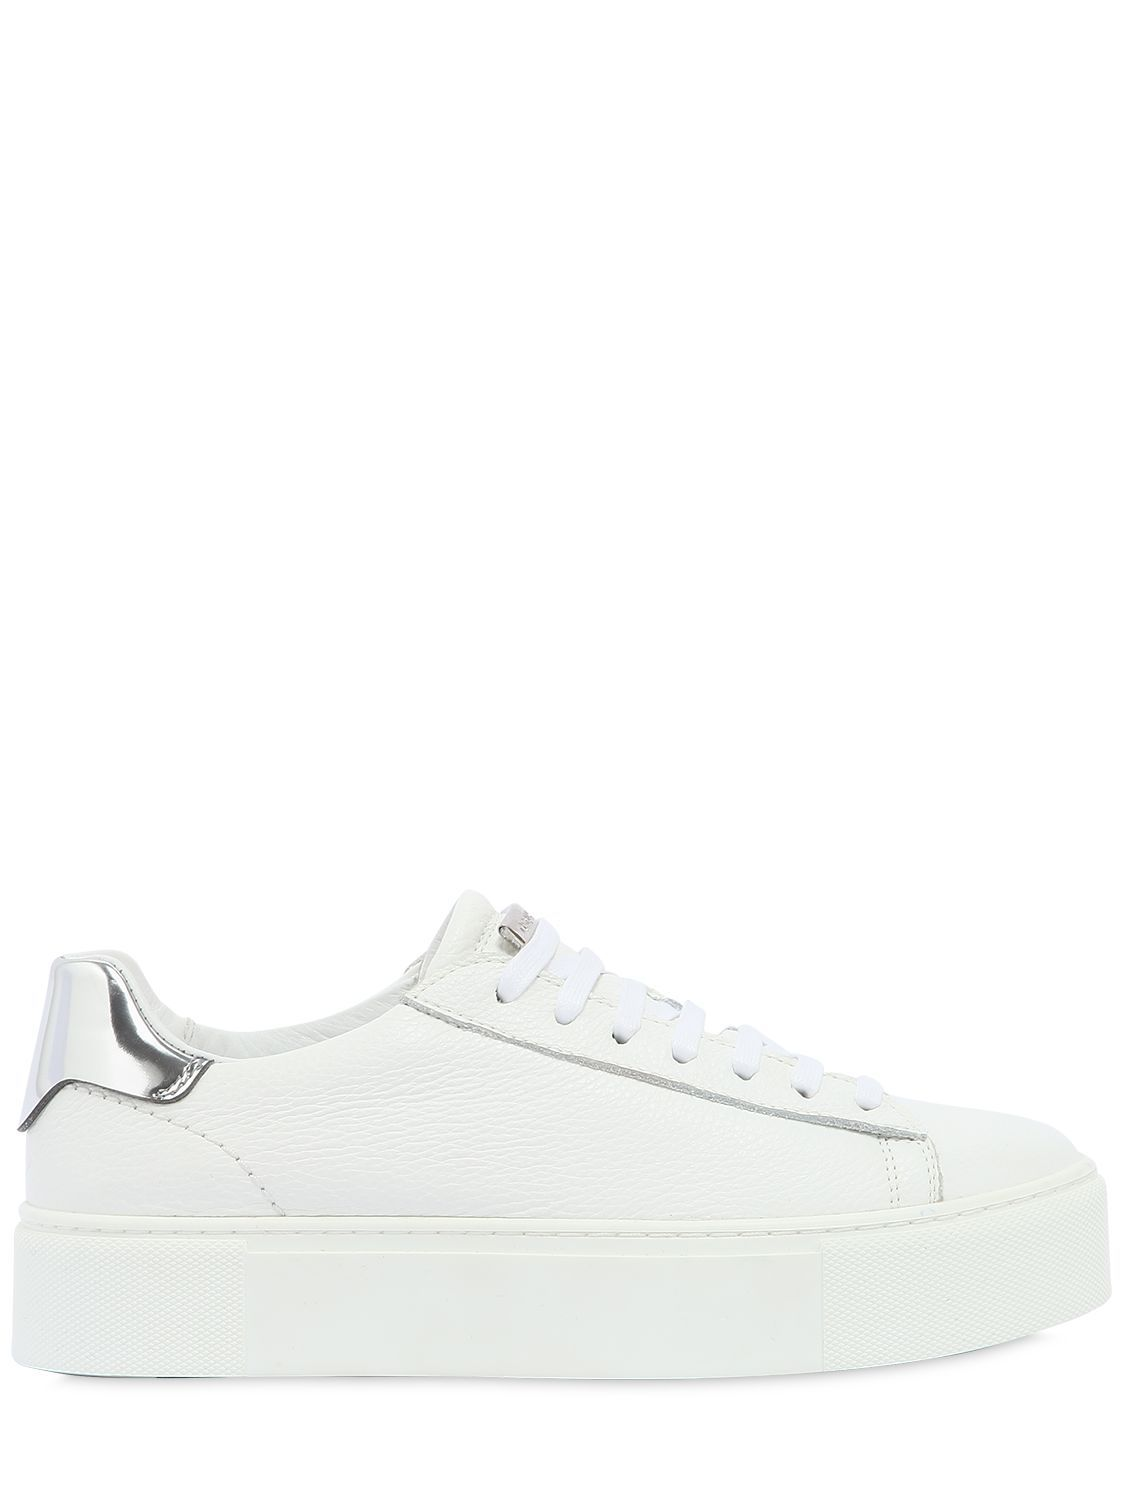 Dsquared2 40MM TENNIS LEATHER PLATFORM SNEAKERS